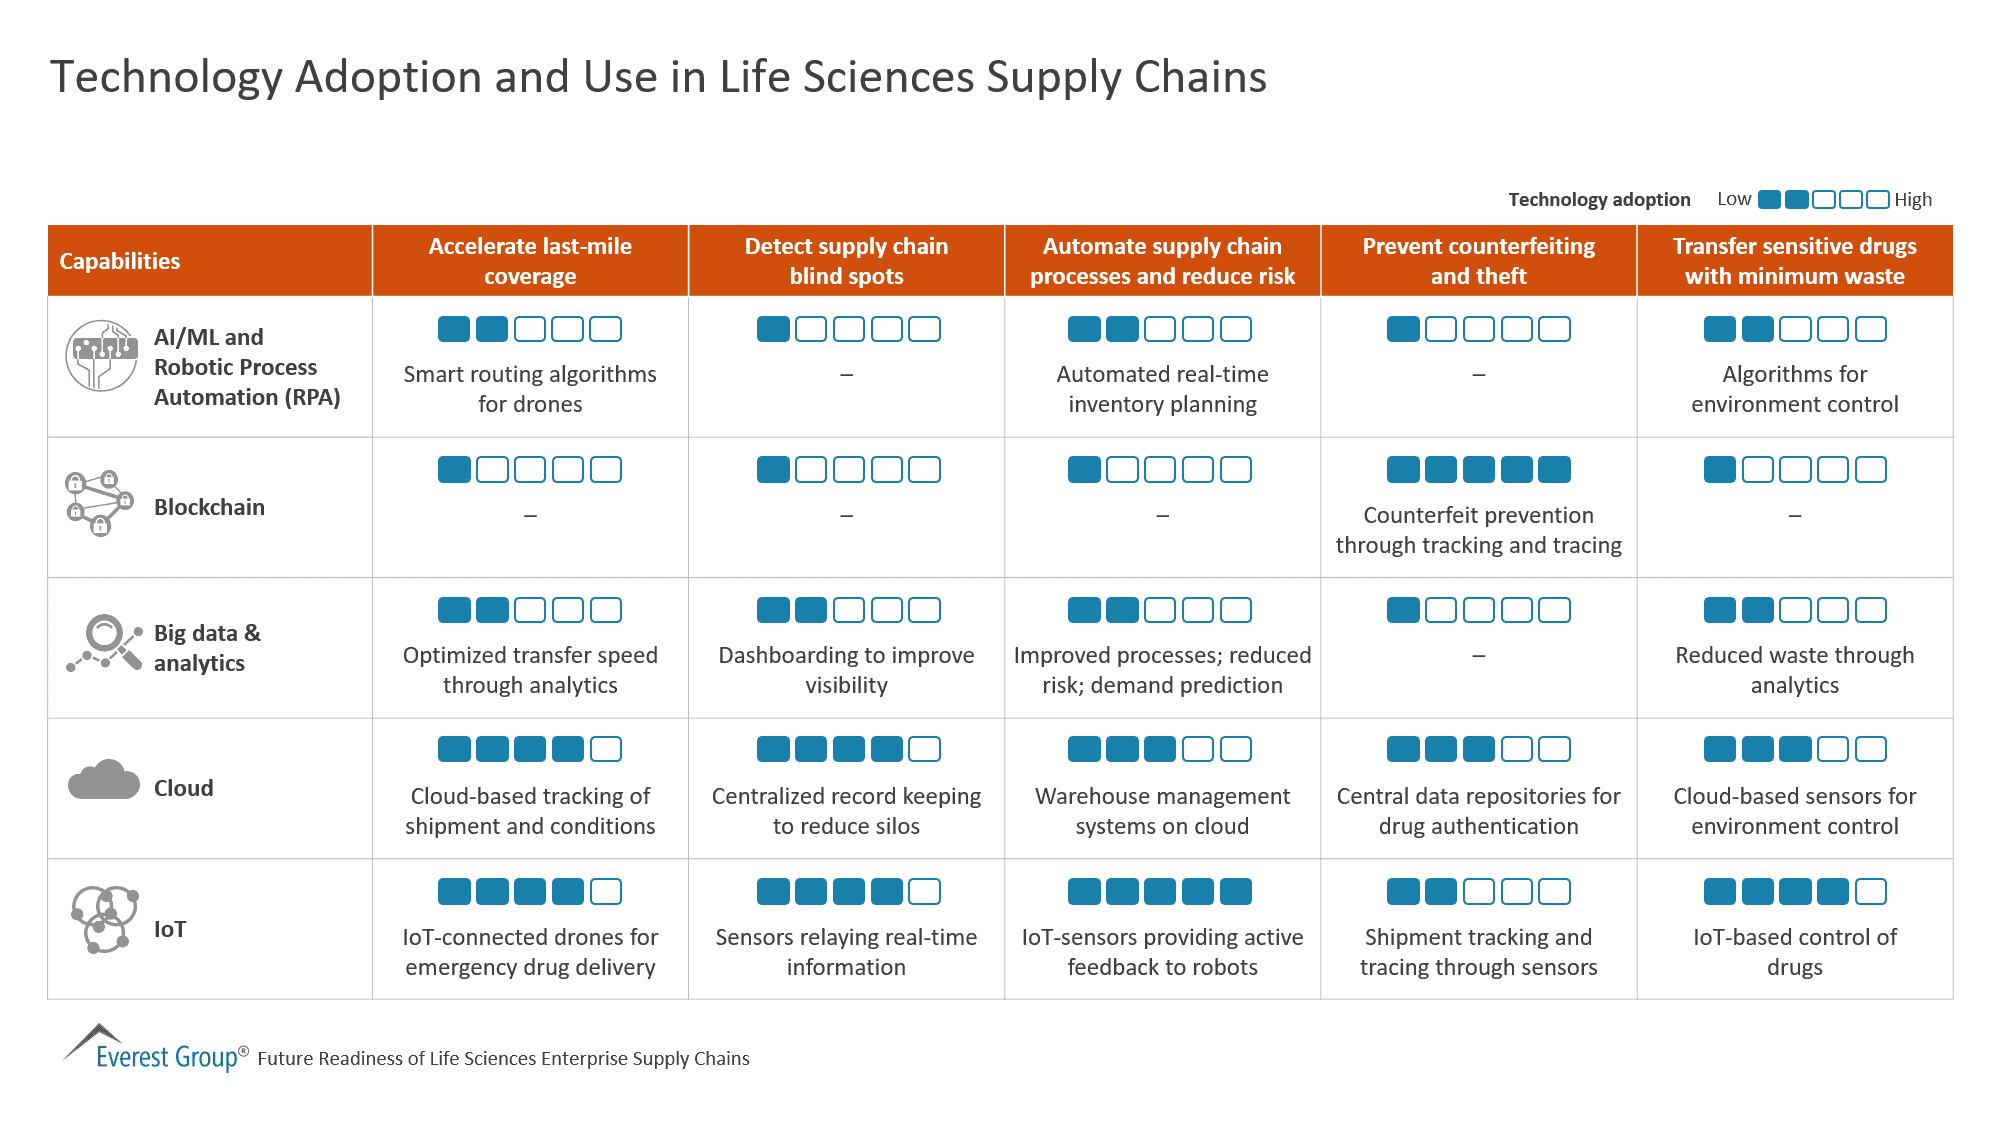 Technology Adoption and Use in Life Sciences Supply Chains